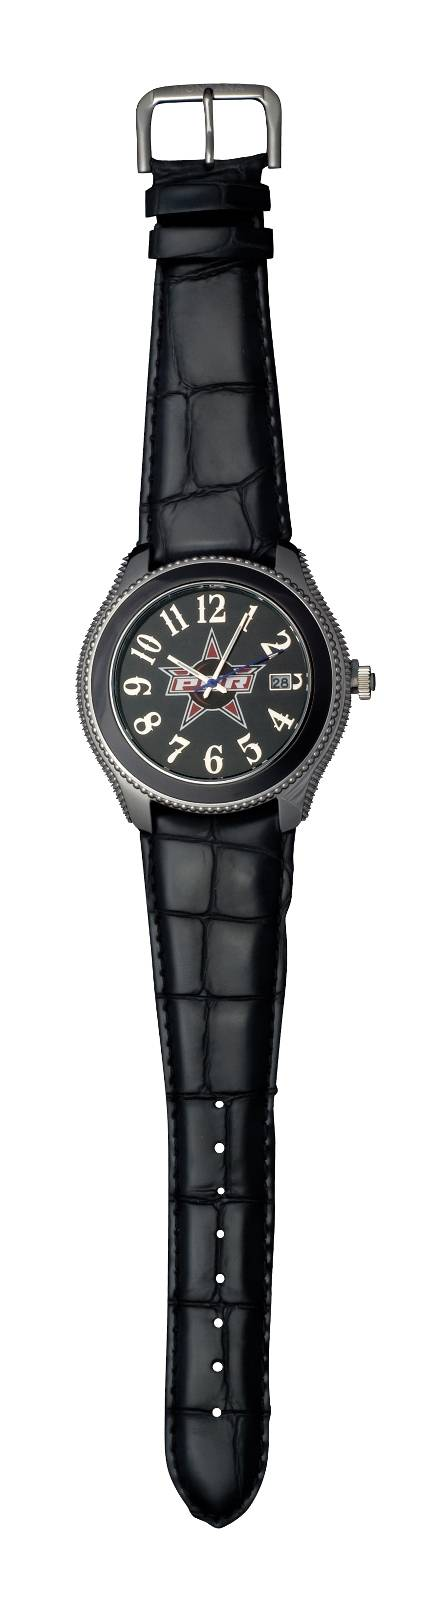 Montana Silversmiths PBR Round Face and Black Crocodile Watch